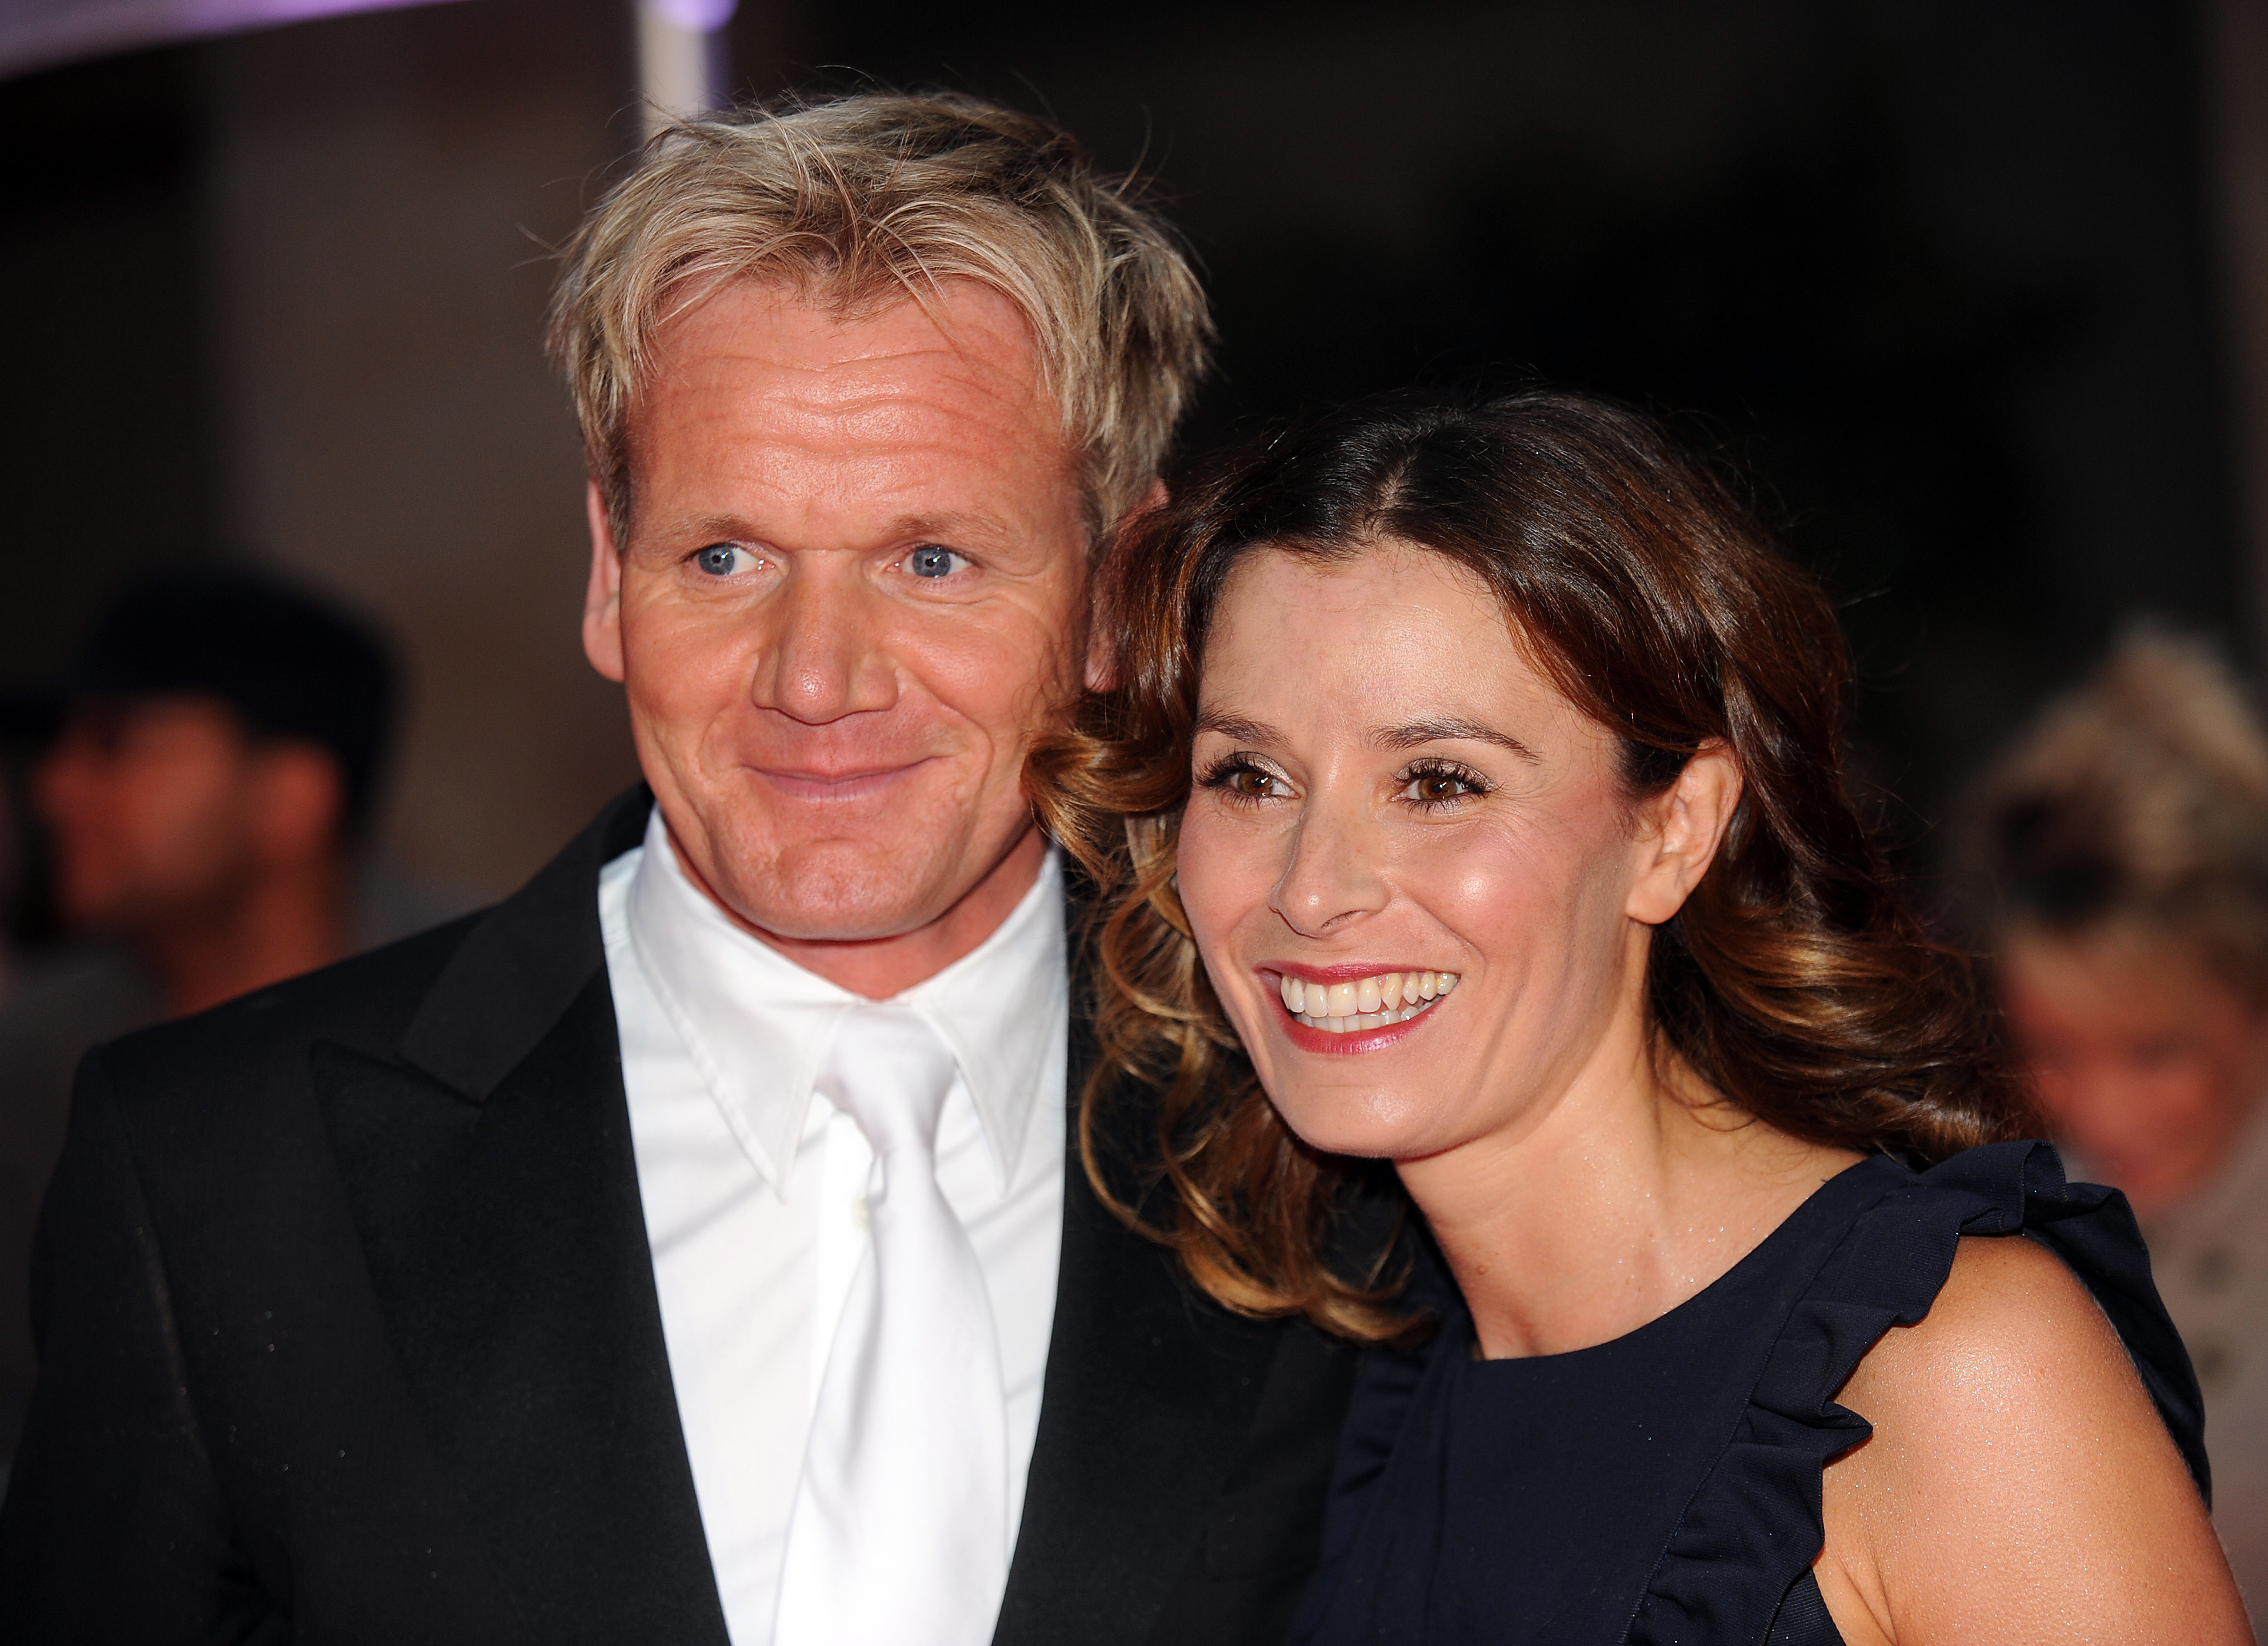 Gordon Ramsay reveals new addition to his family